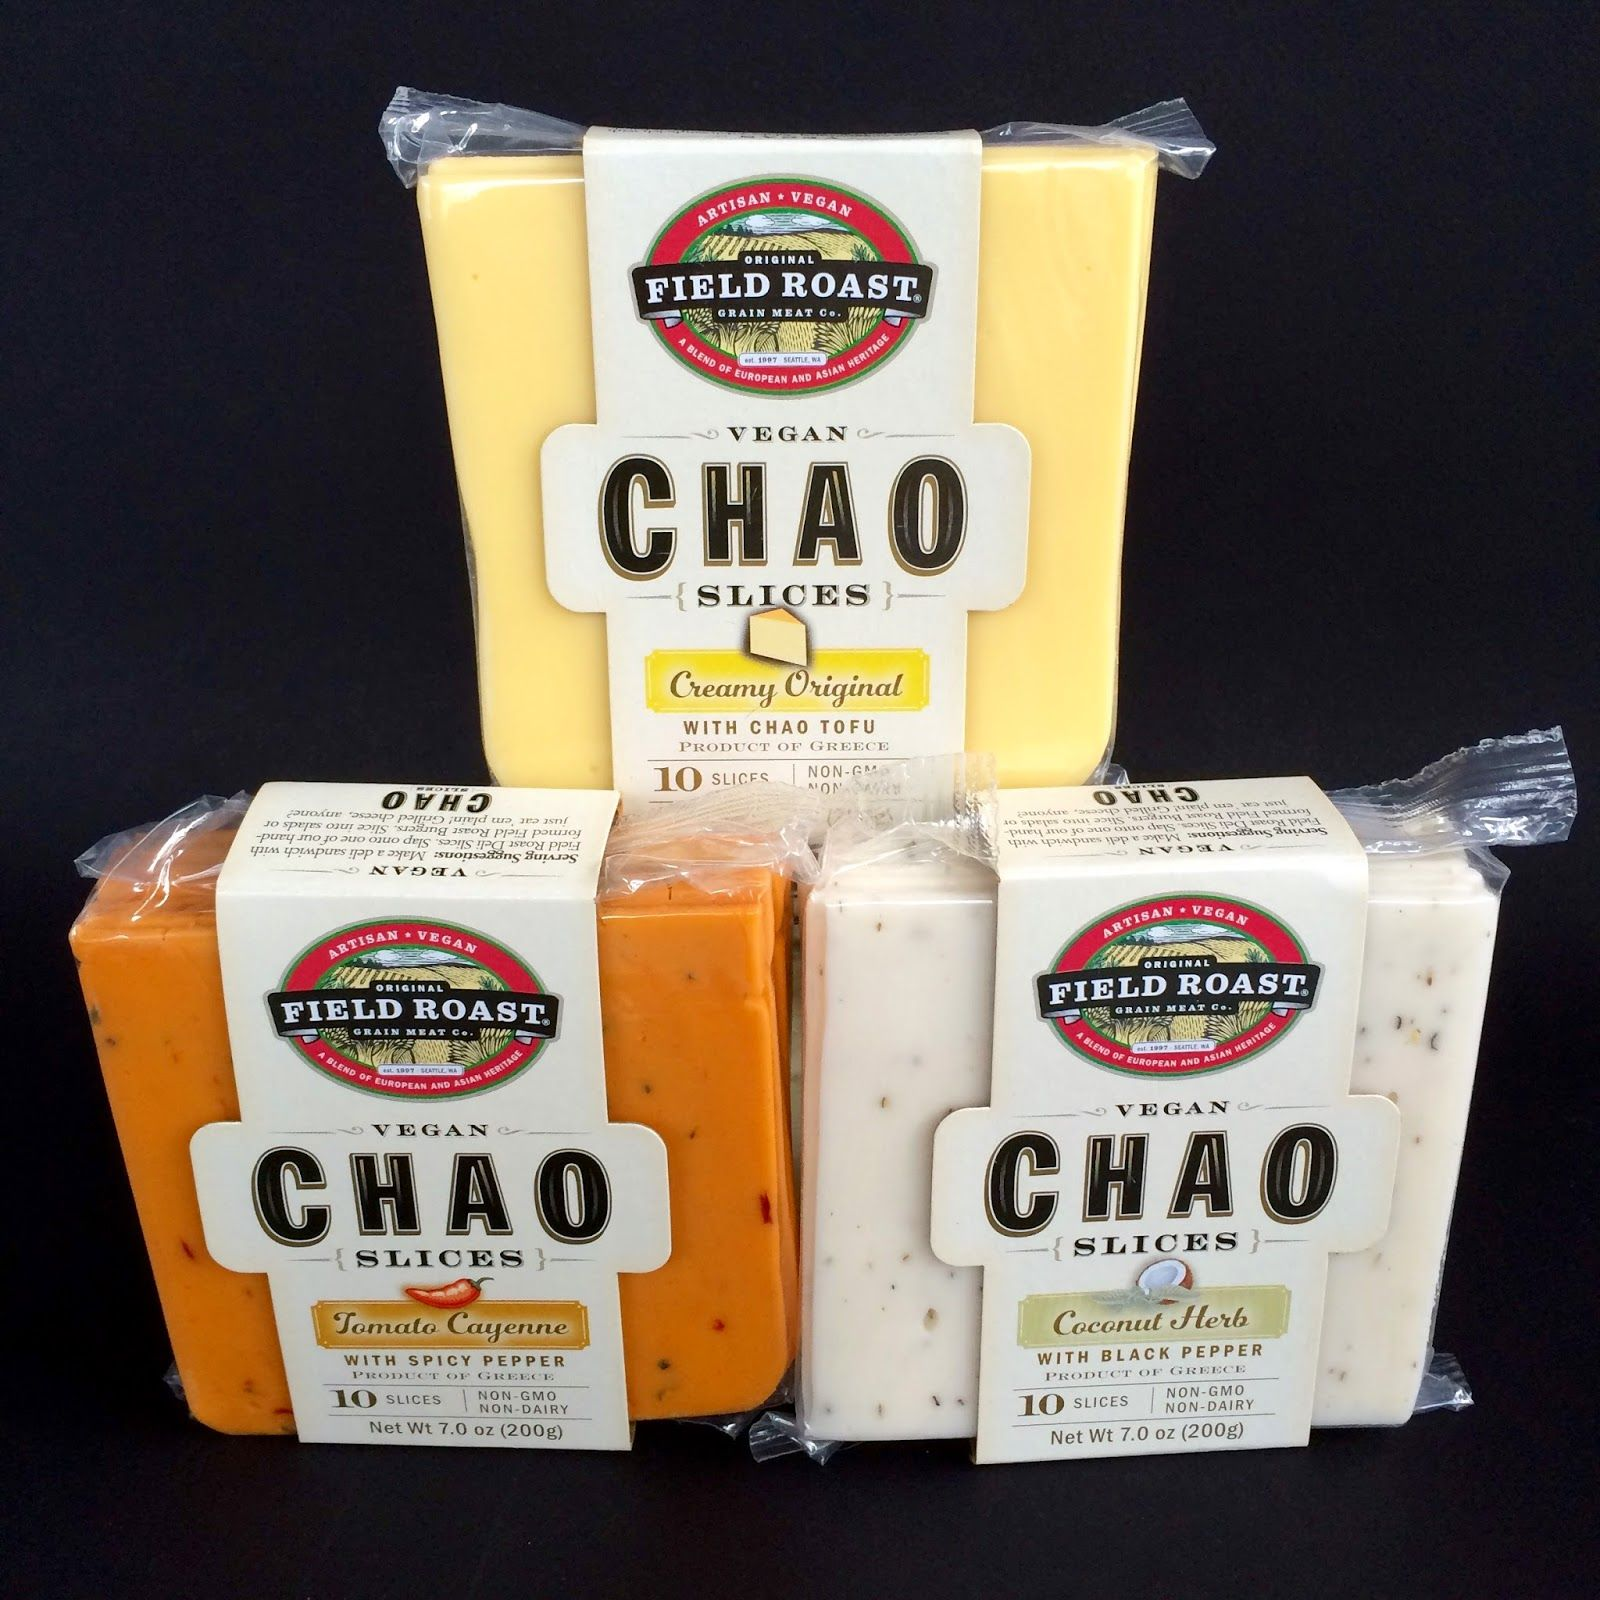 The Original Creamy Is Phenomenal It Is So Delicious And The Taste And Texture Are Spot On Best Vegan Cheese Field Roast Vegan Cheese